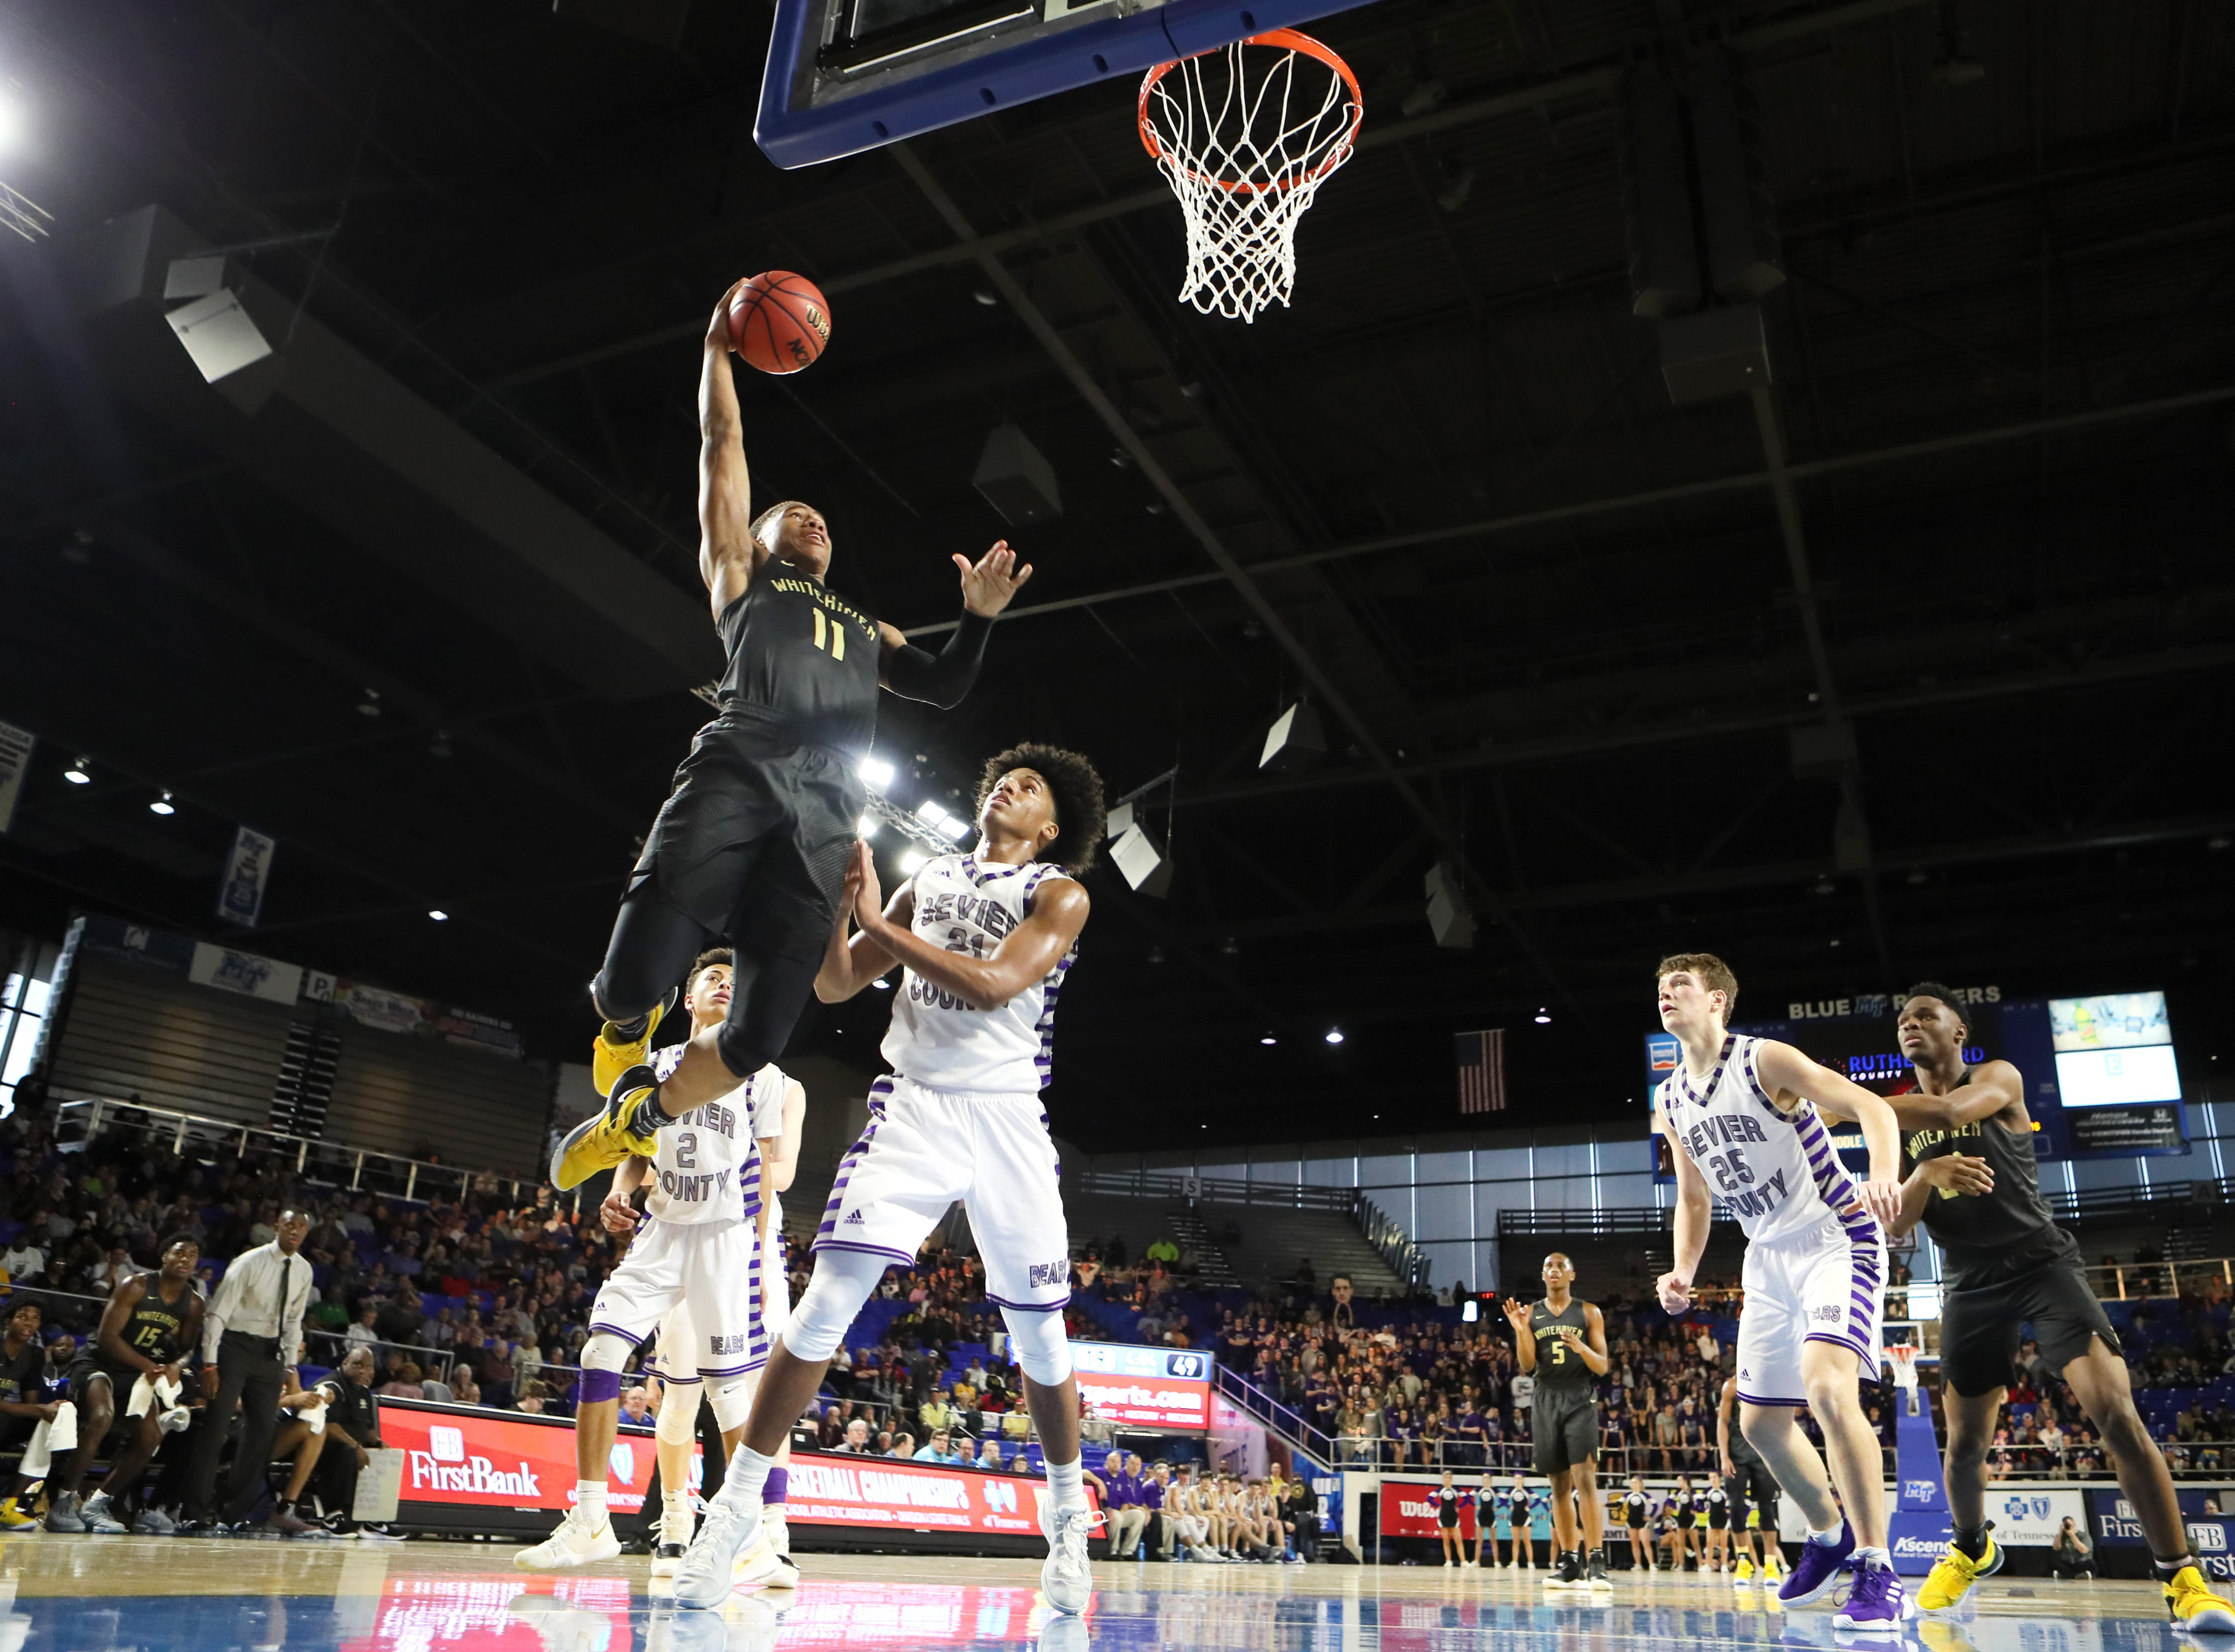 Whitehaven's Matthew Murrell leaps to dunk the ball against Sevier County during the TSSAA Division I basketball state tournament at the Murphy Center in Murfreesboro, Tenn. on Wednesday, March 13, 2019.